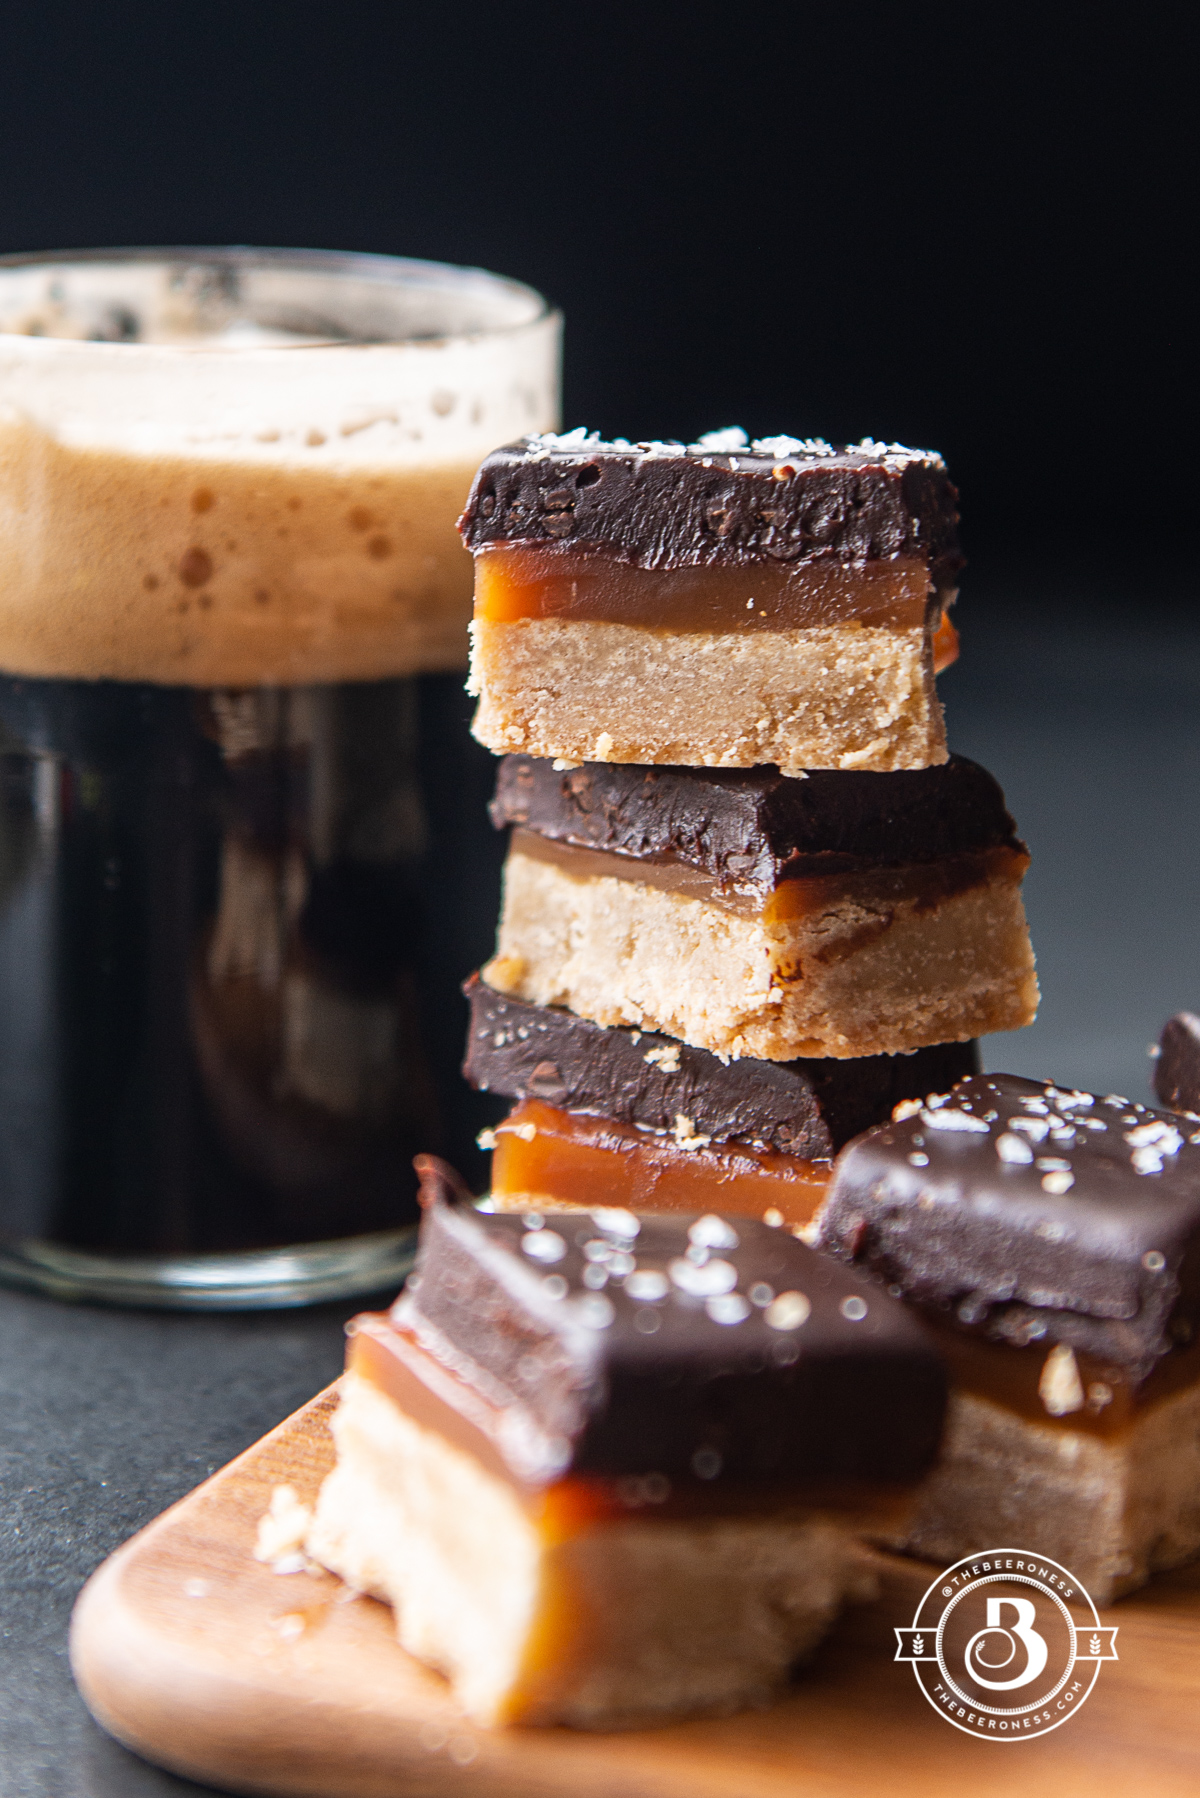 One of The Beeroness' dessert recipes